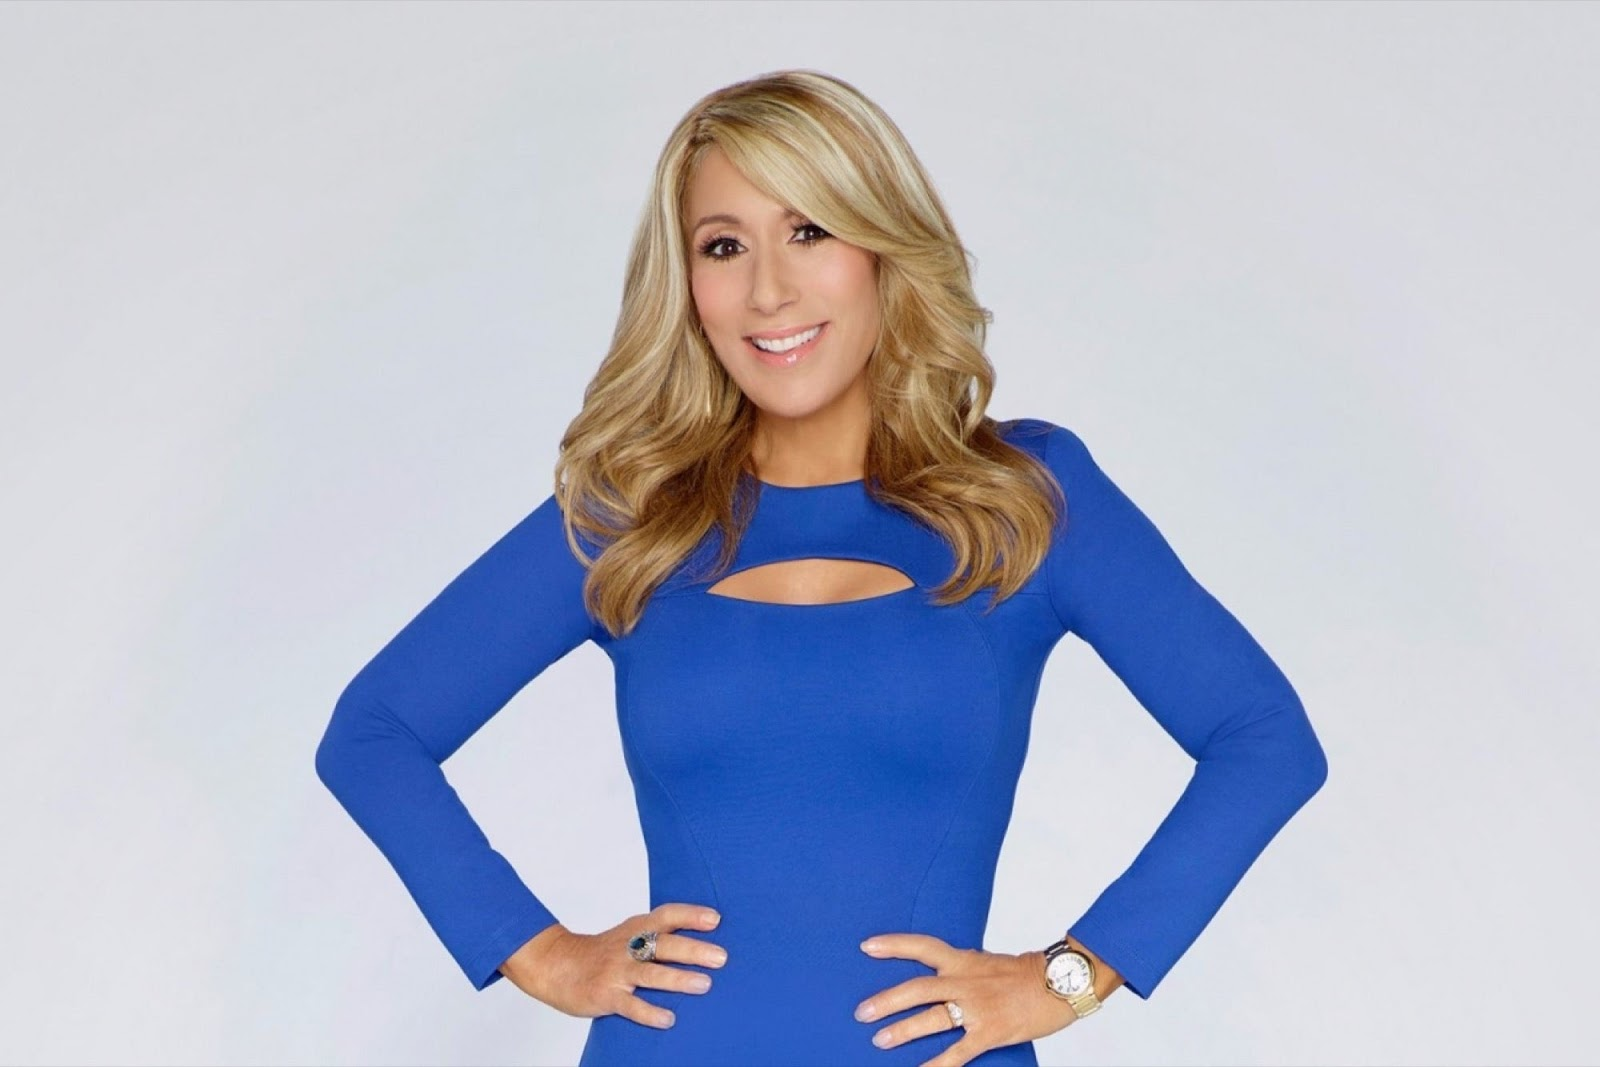 Lori Greiner Net Worth, Life Story, Business, Age, Family Wiki & FAQs